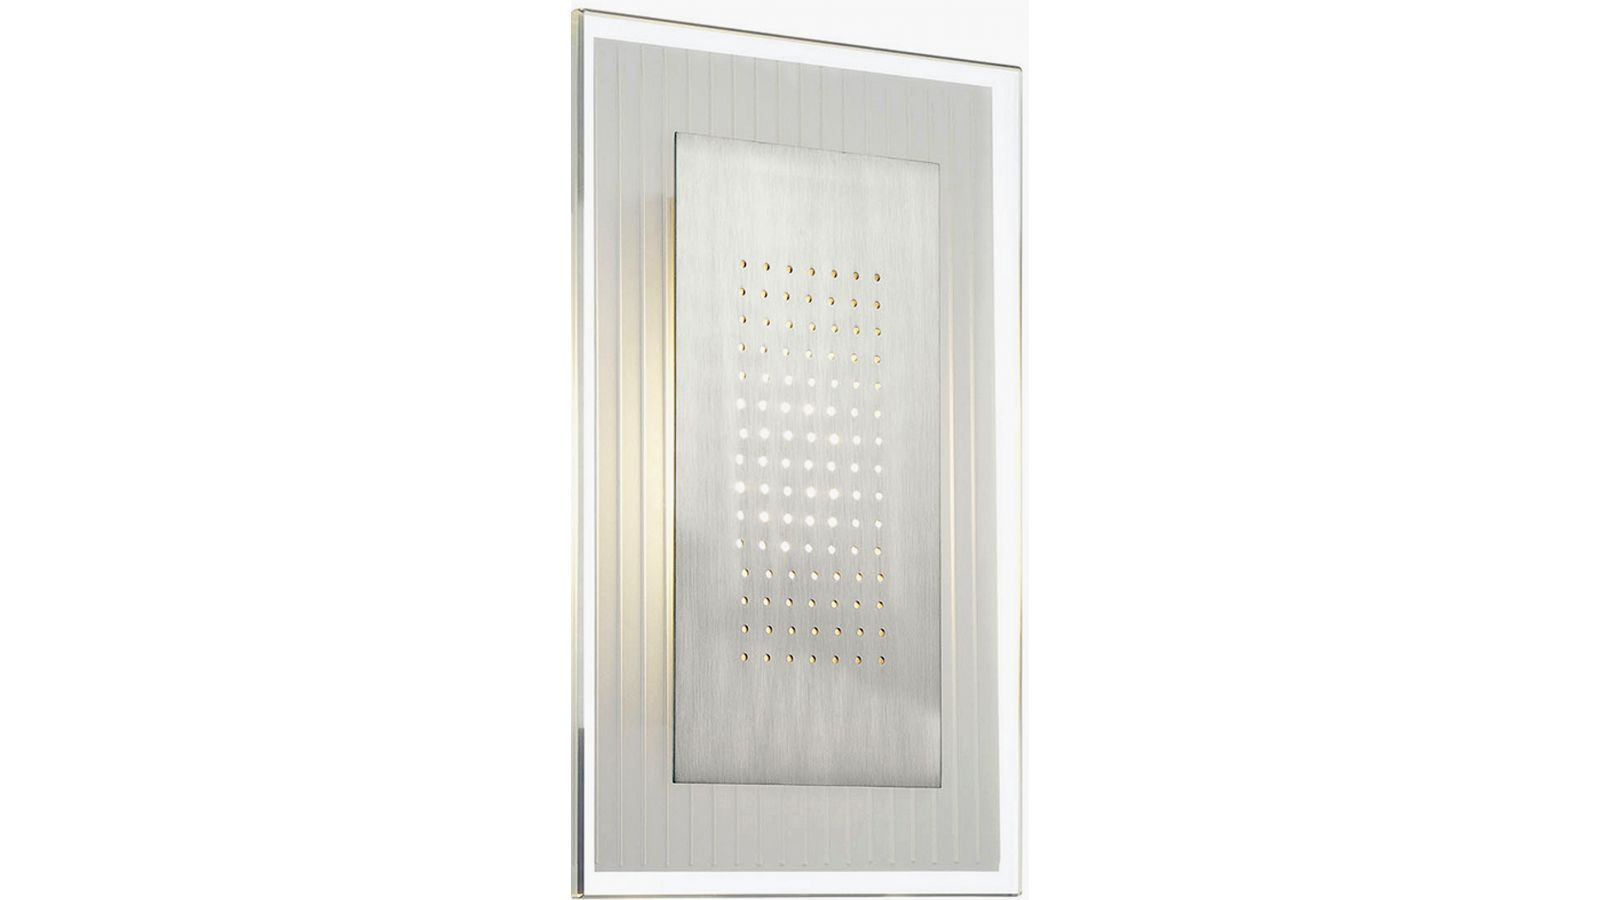 Flynn Rectangular Wall Sconce